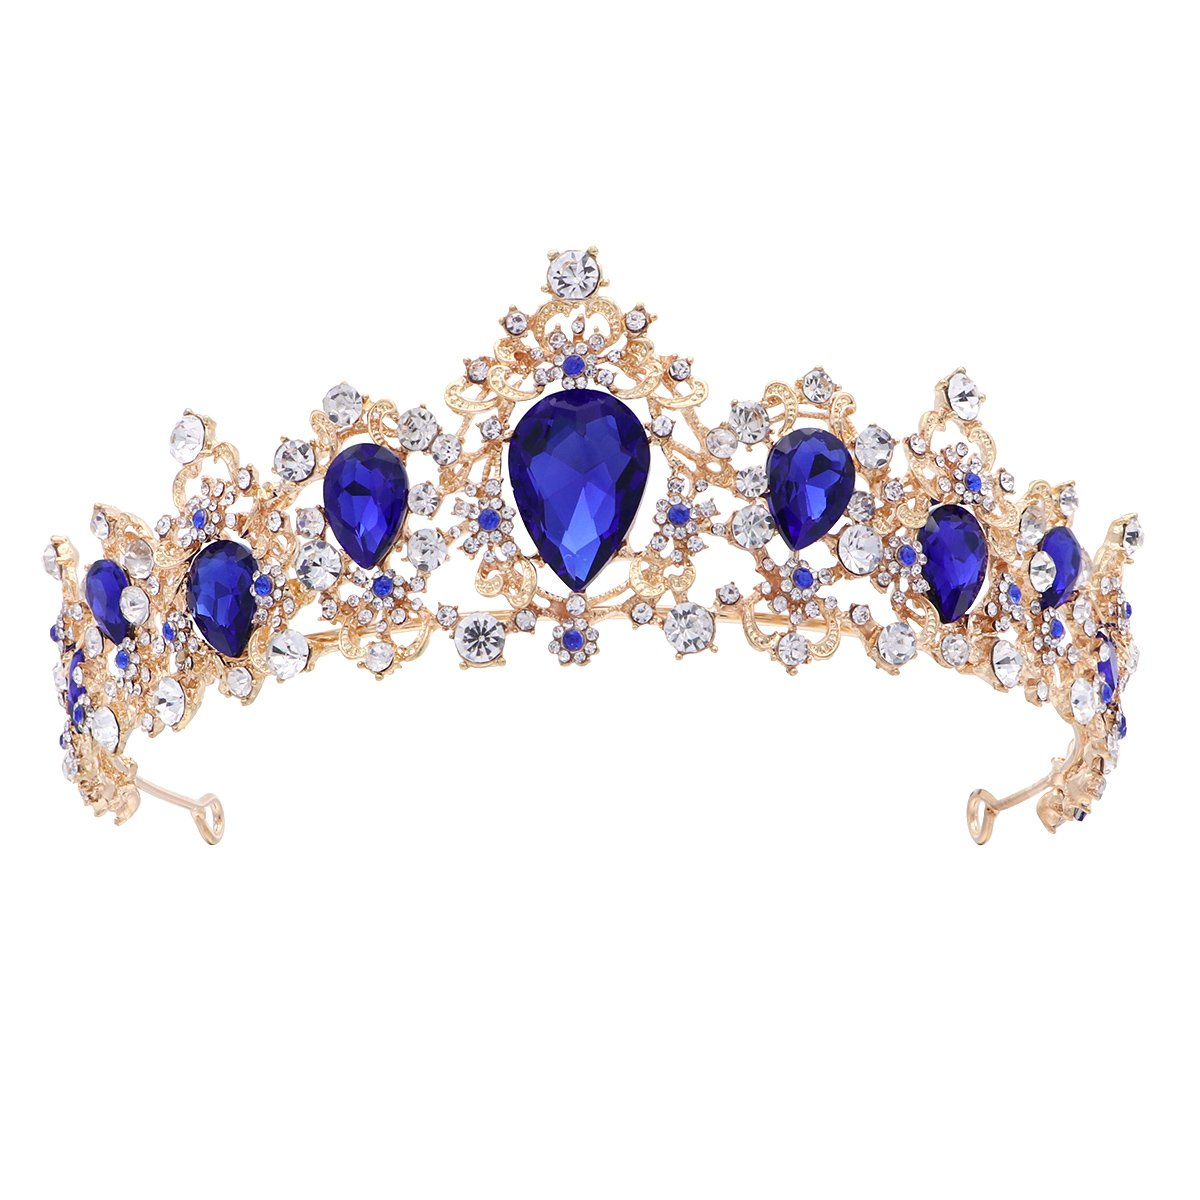 Frcolor Tiara Crown for Women,Rhinestone Tree Branch Queen Crowns Wedding Tiaras Crowns Headband (Blue) by FRCOLOR